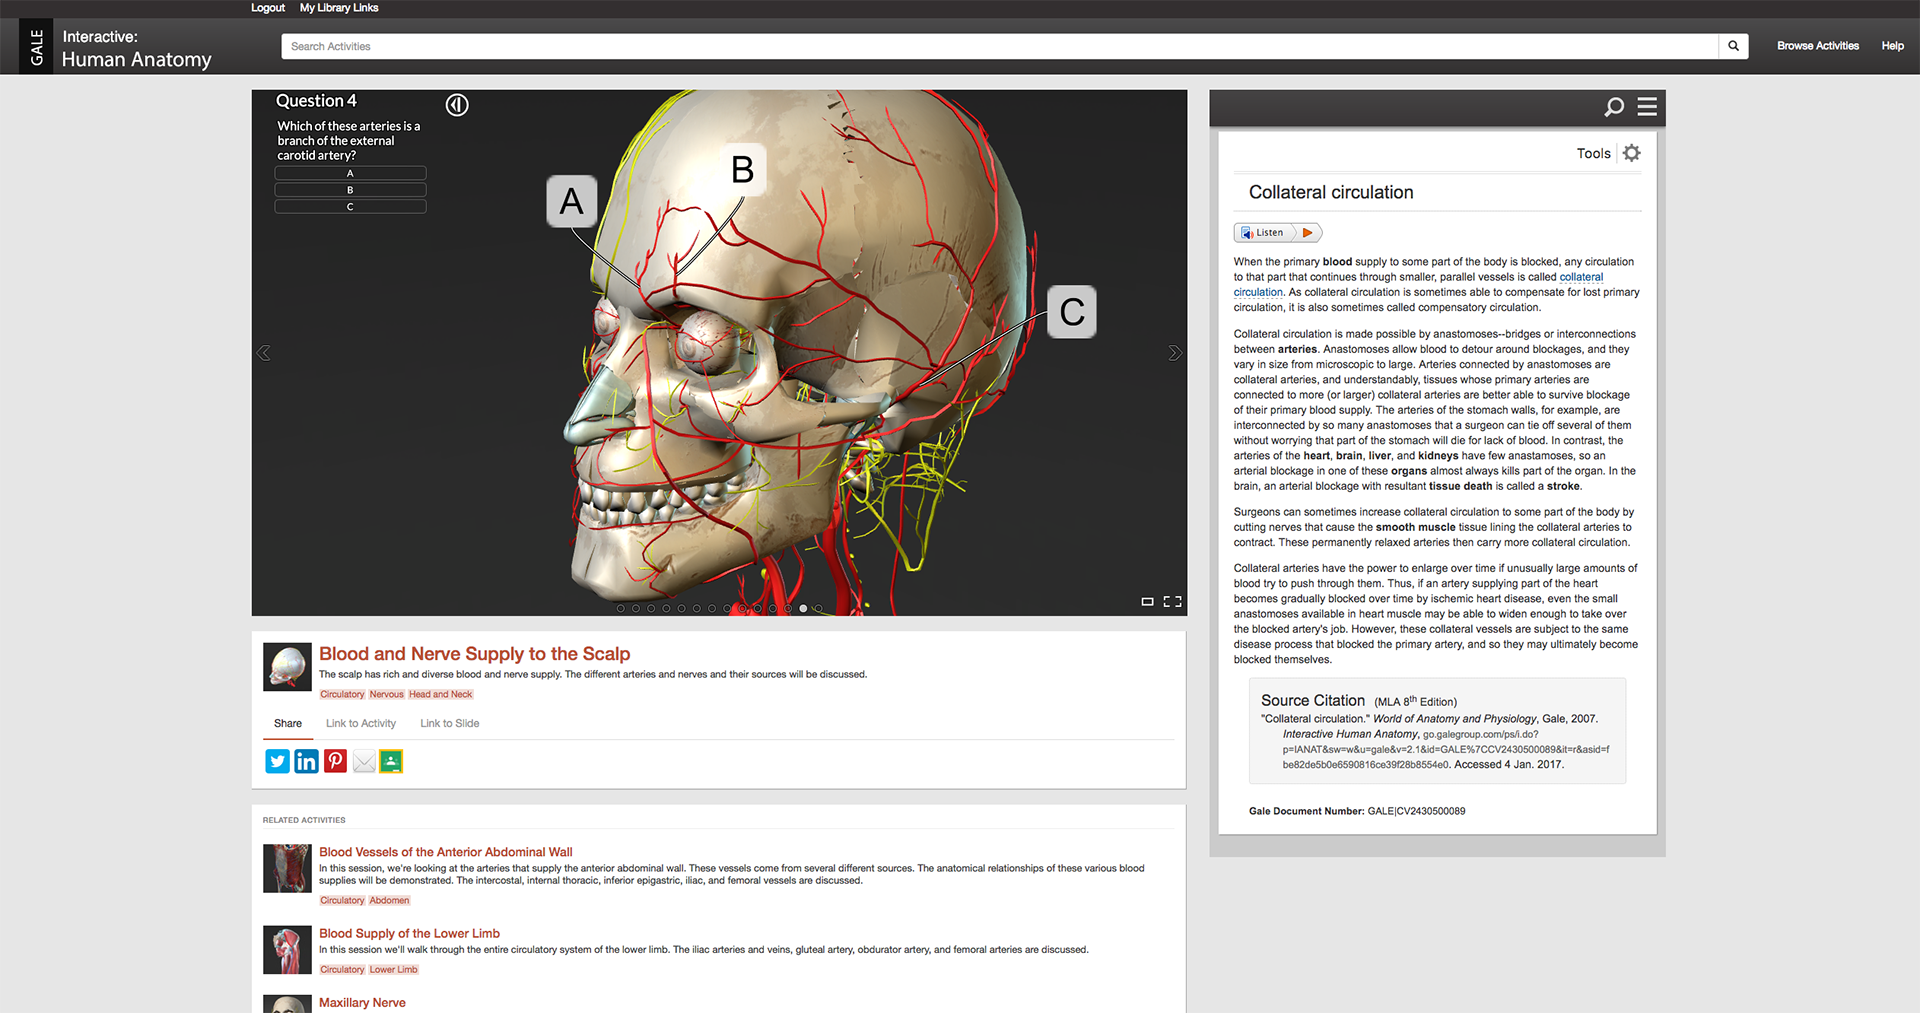 Self-assessment tool in Gale Interactive: Human Anatomy.